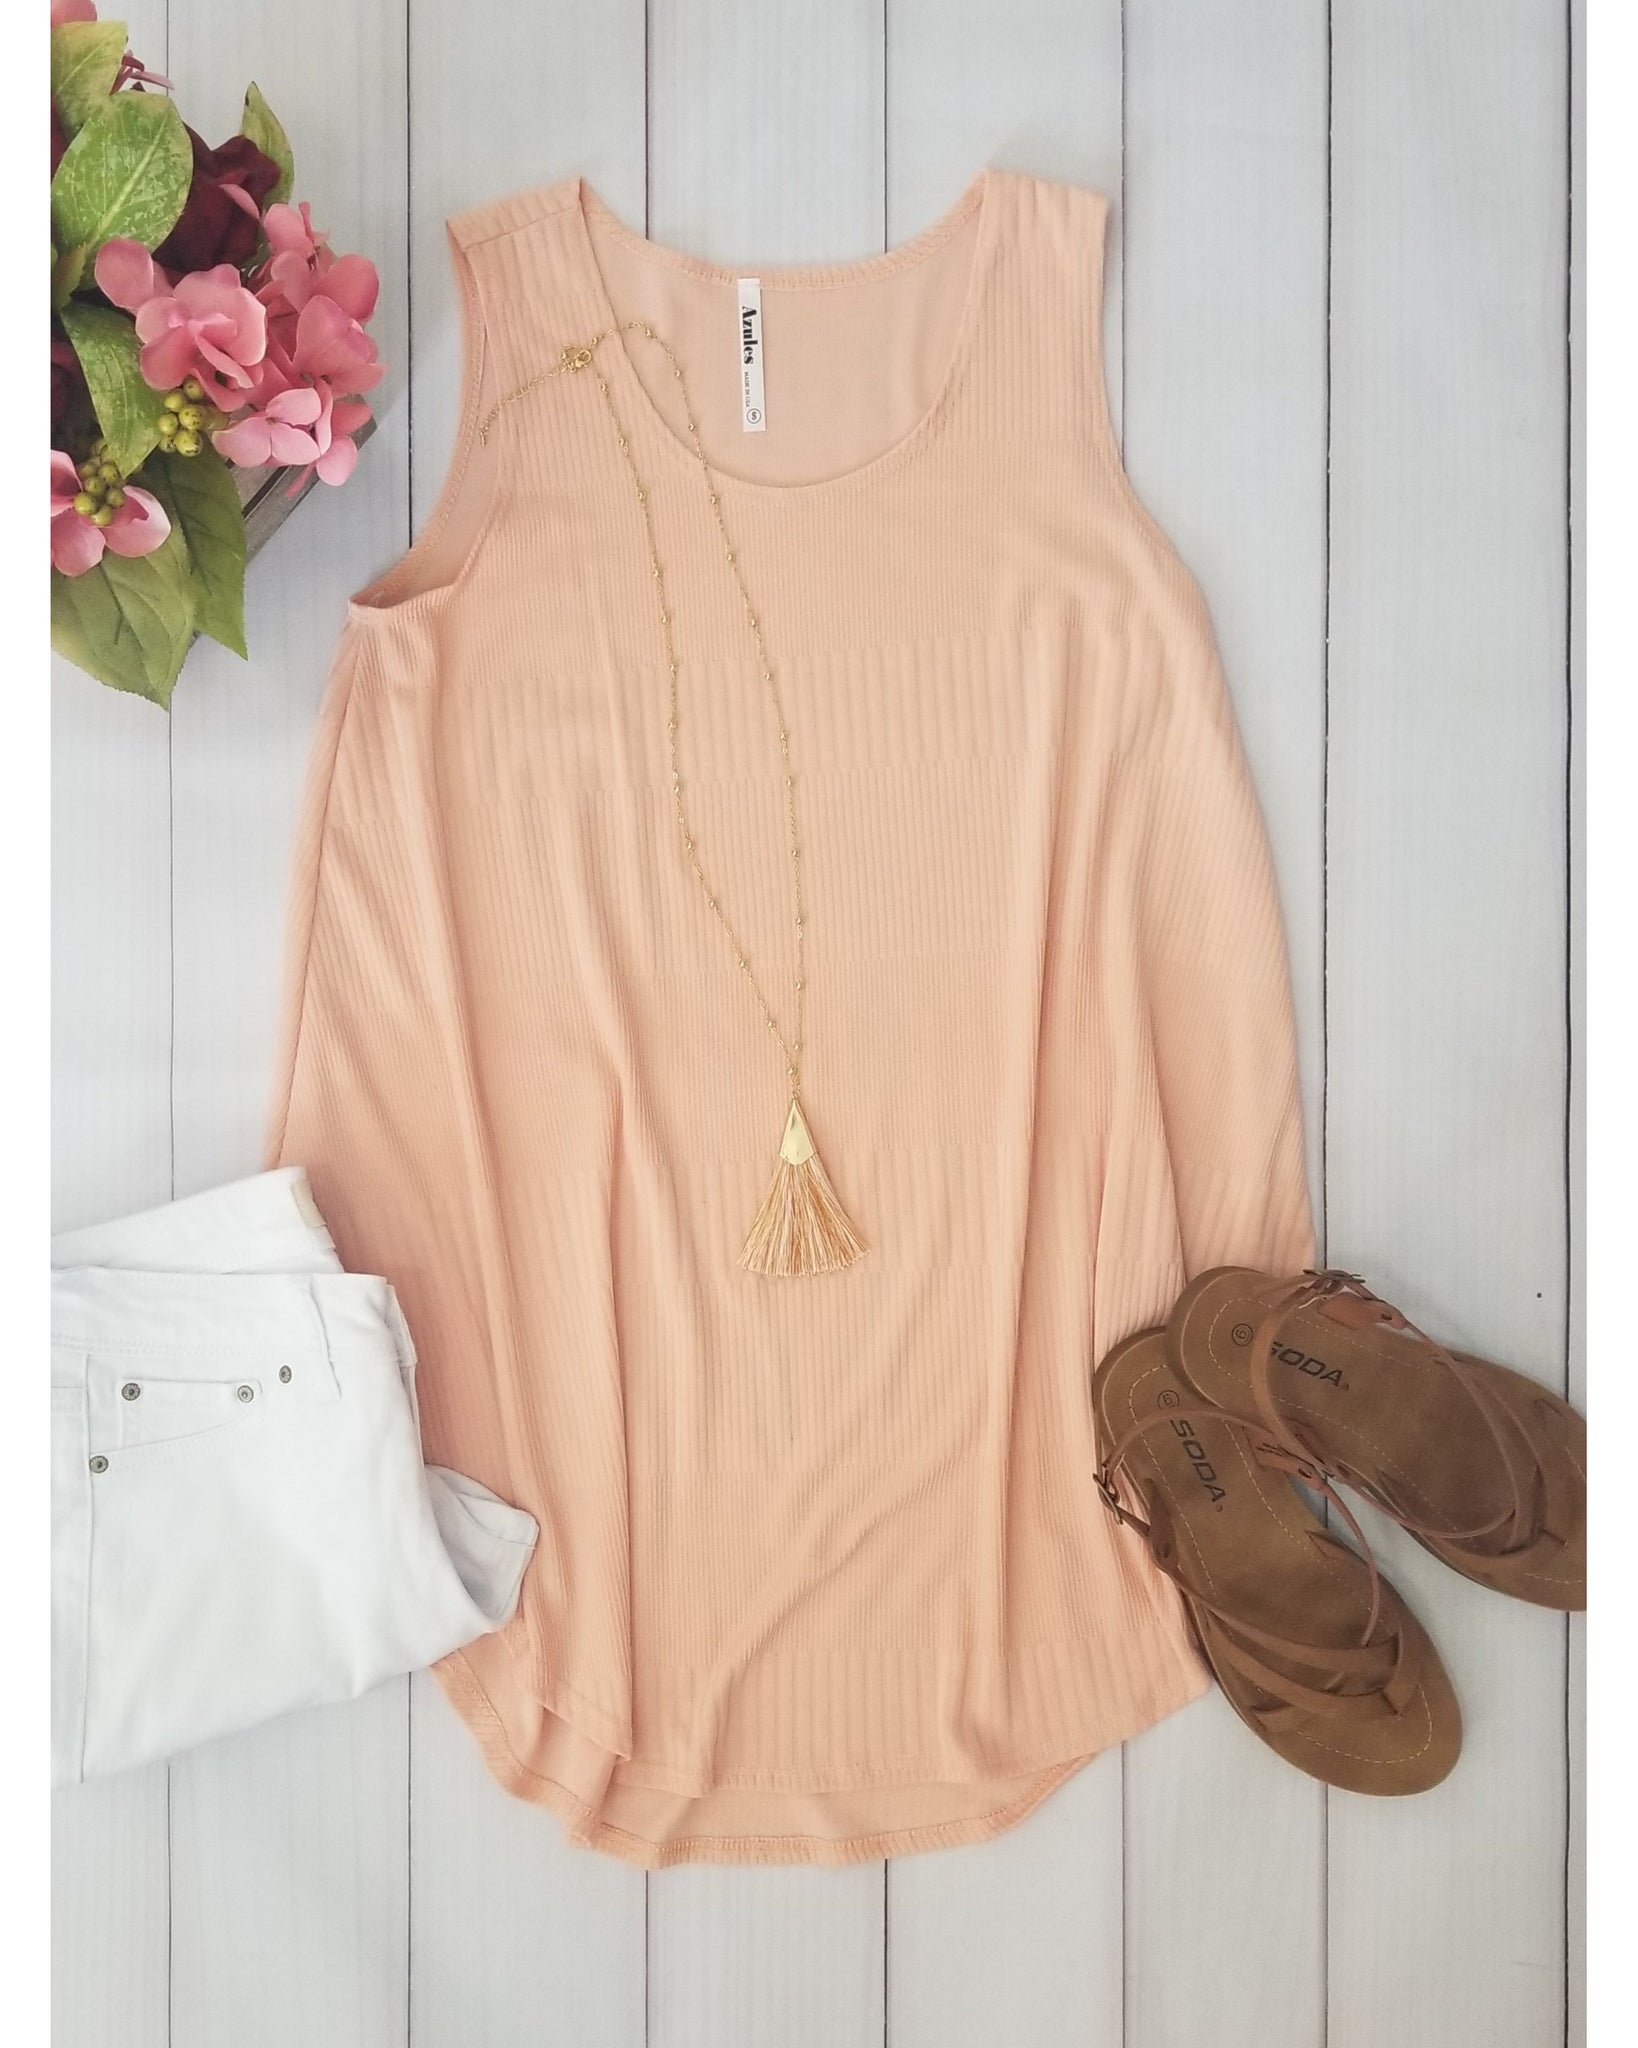 City Chic Sleeveless Knit Top in Peach - Essentially Elegant